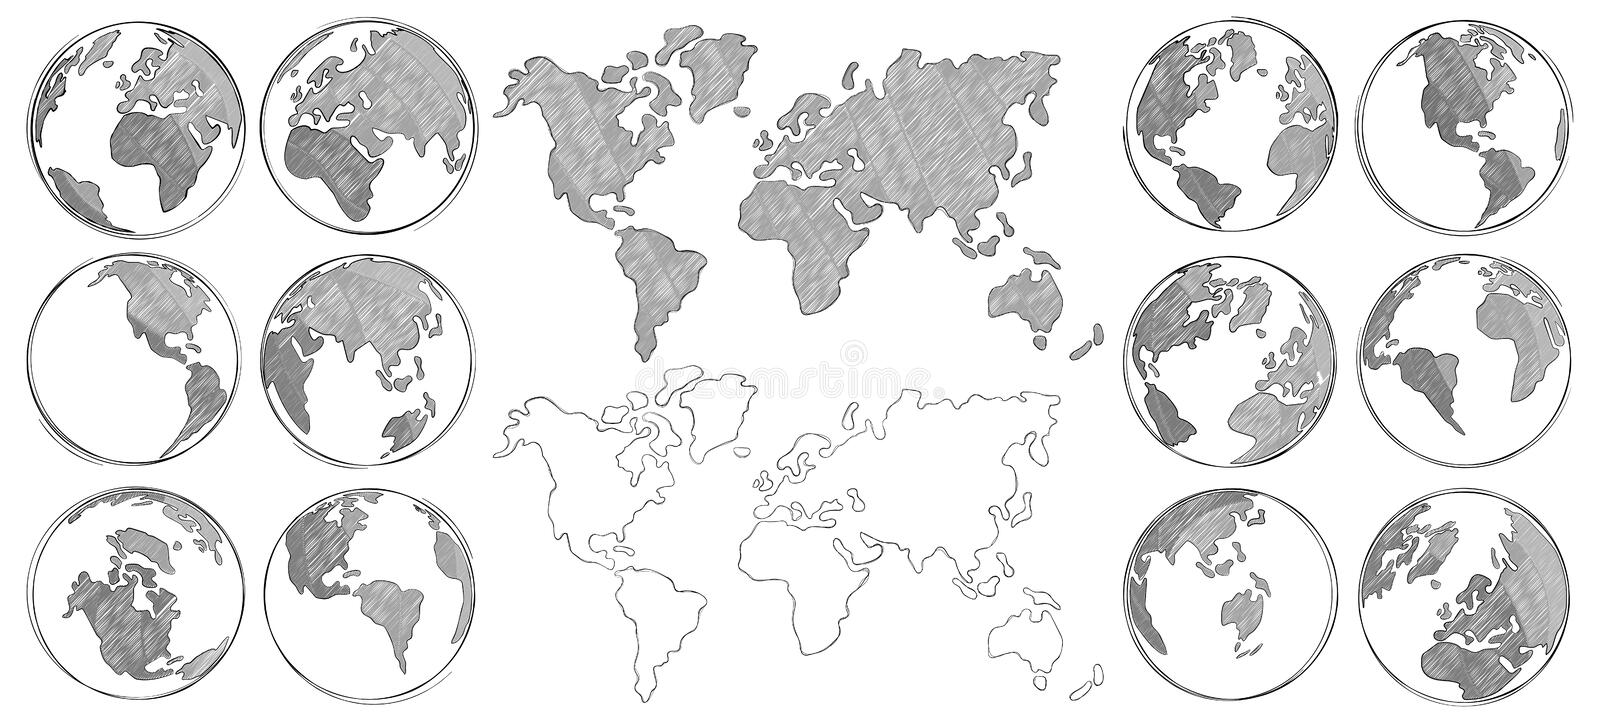 Sketch map. Hand drawn earth globe, drawing world maps and globes sketches isolated vector illustration royalty free illustration